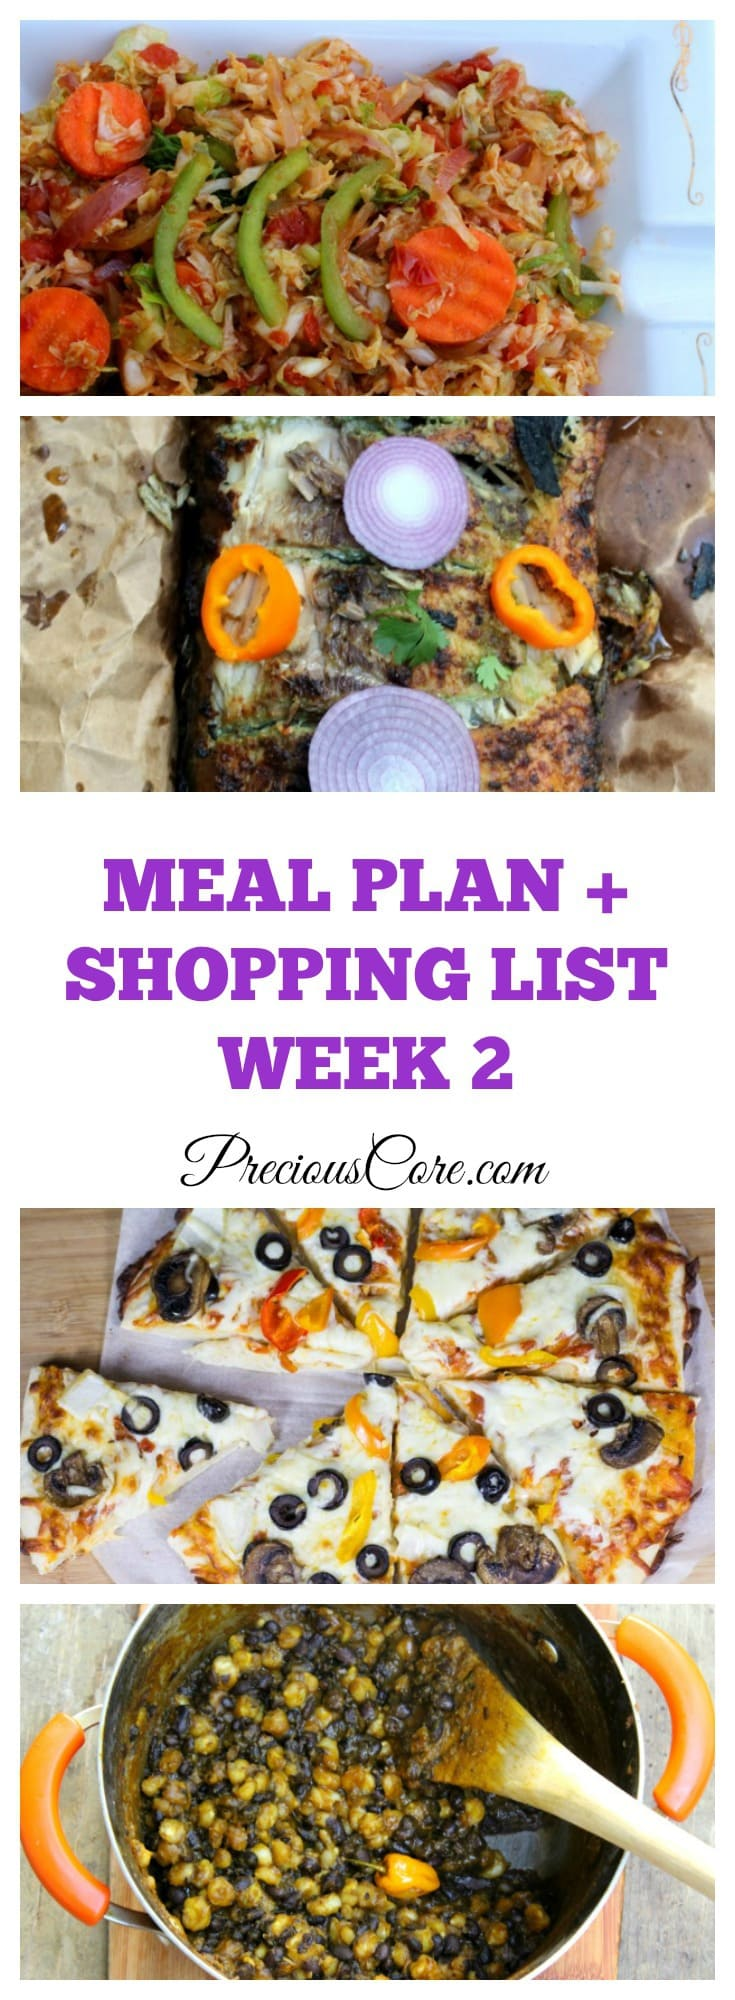 Meal Plan + Shopping List Week 2 - Precious Core